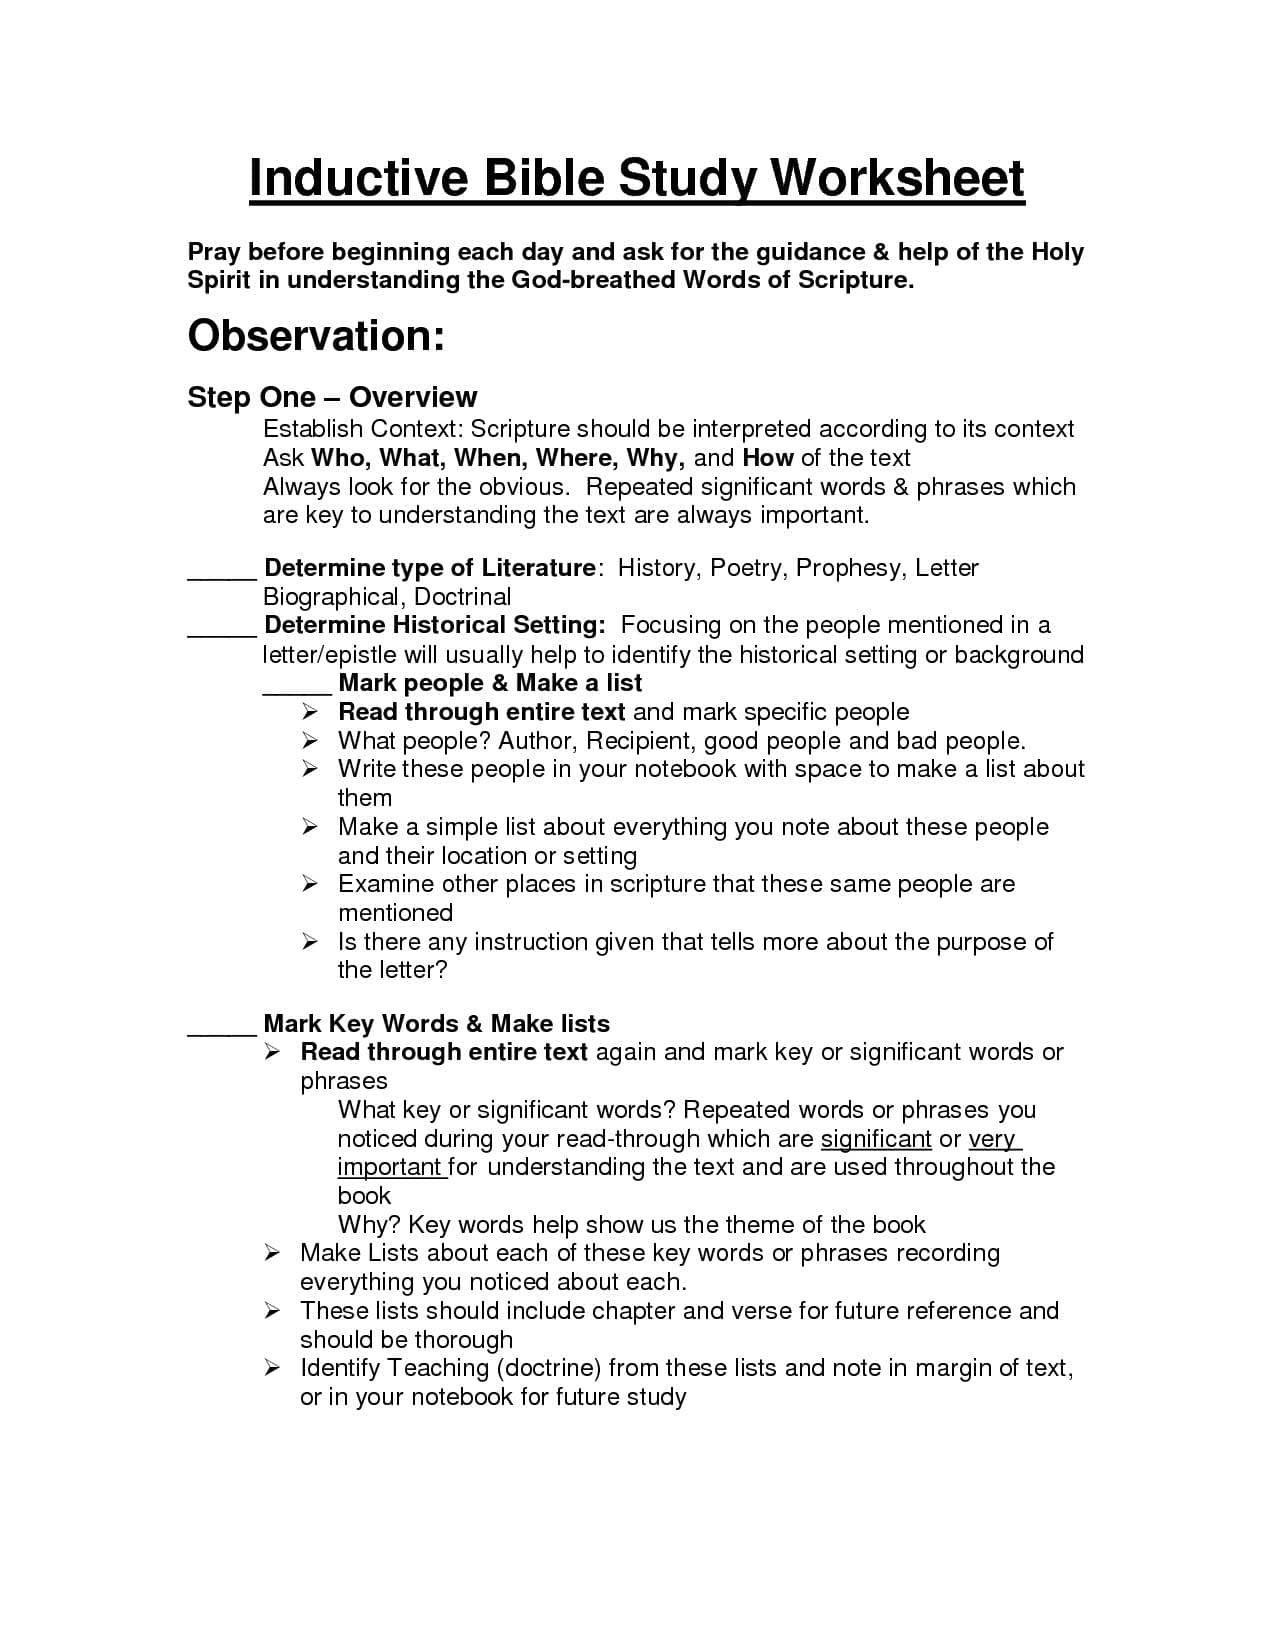 Printable Bible Study Worksheets For Adults Printable Youth Bible Regarding Bible Study Worksheets For Youth